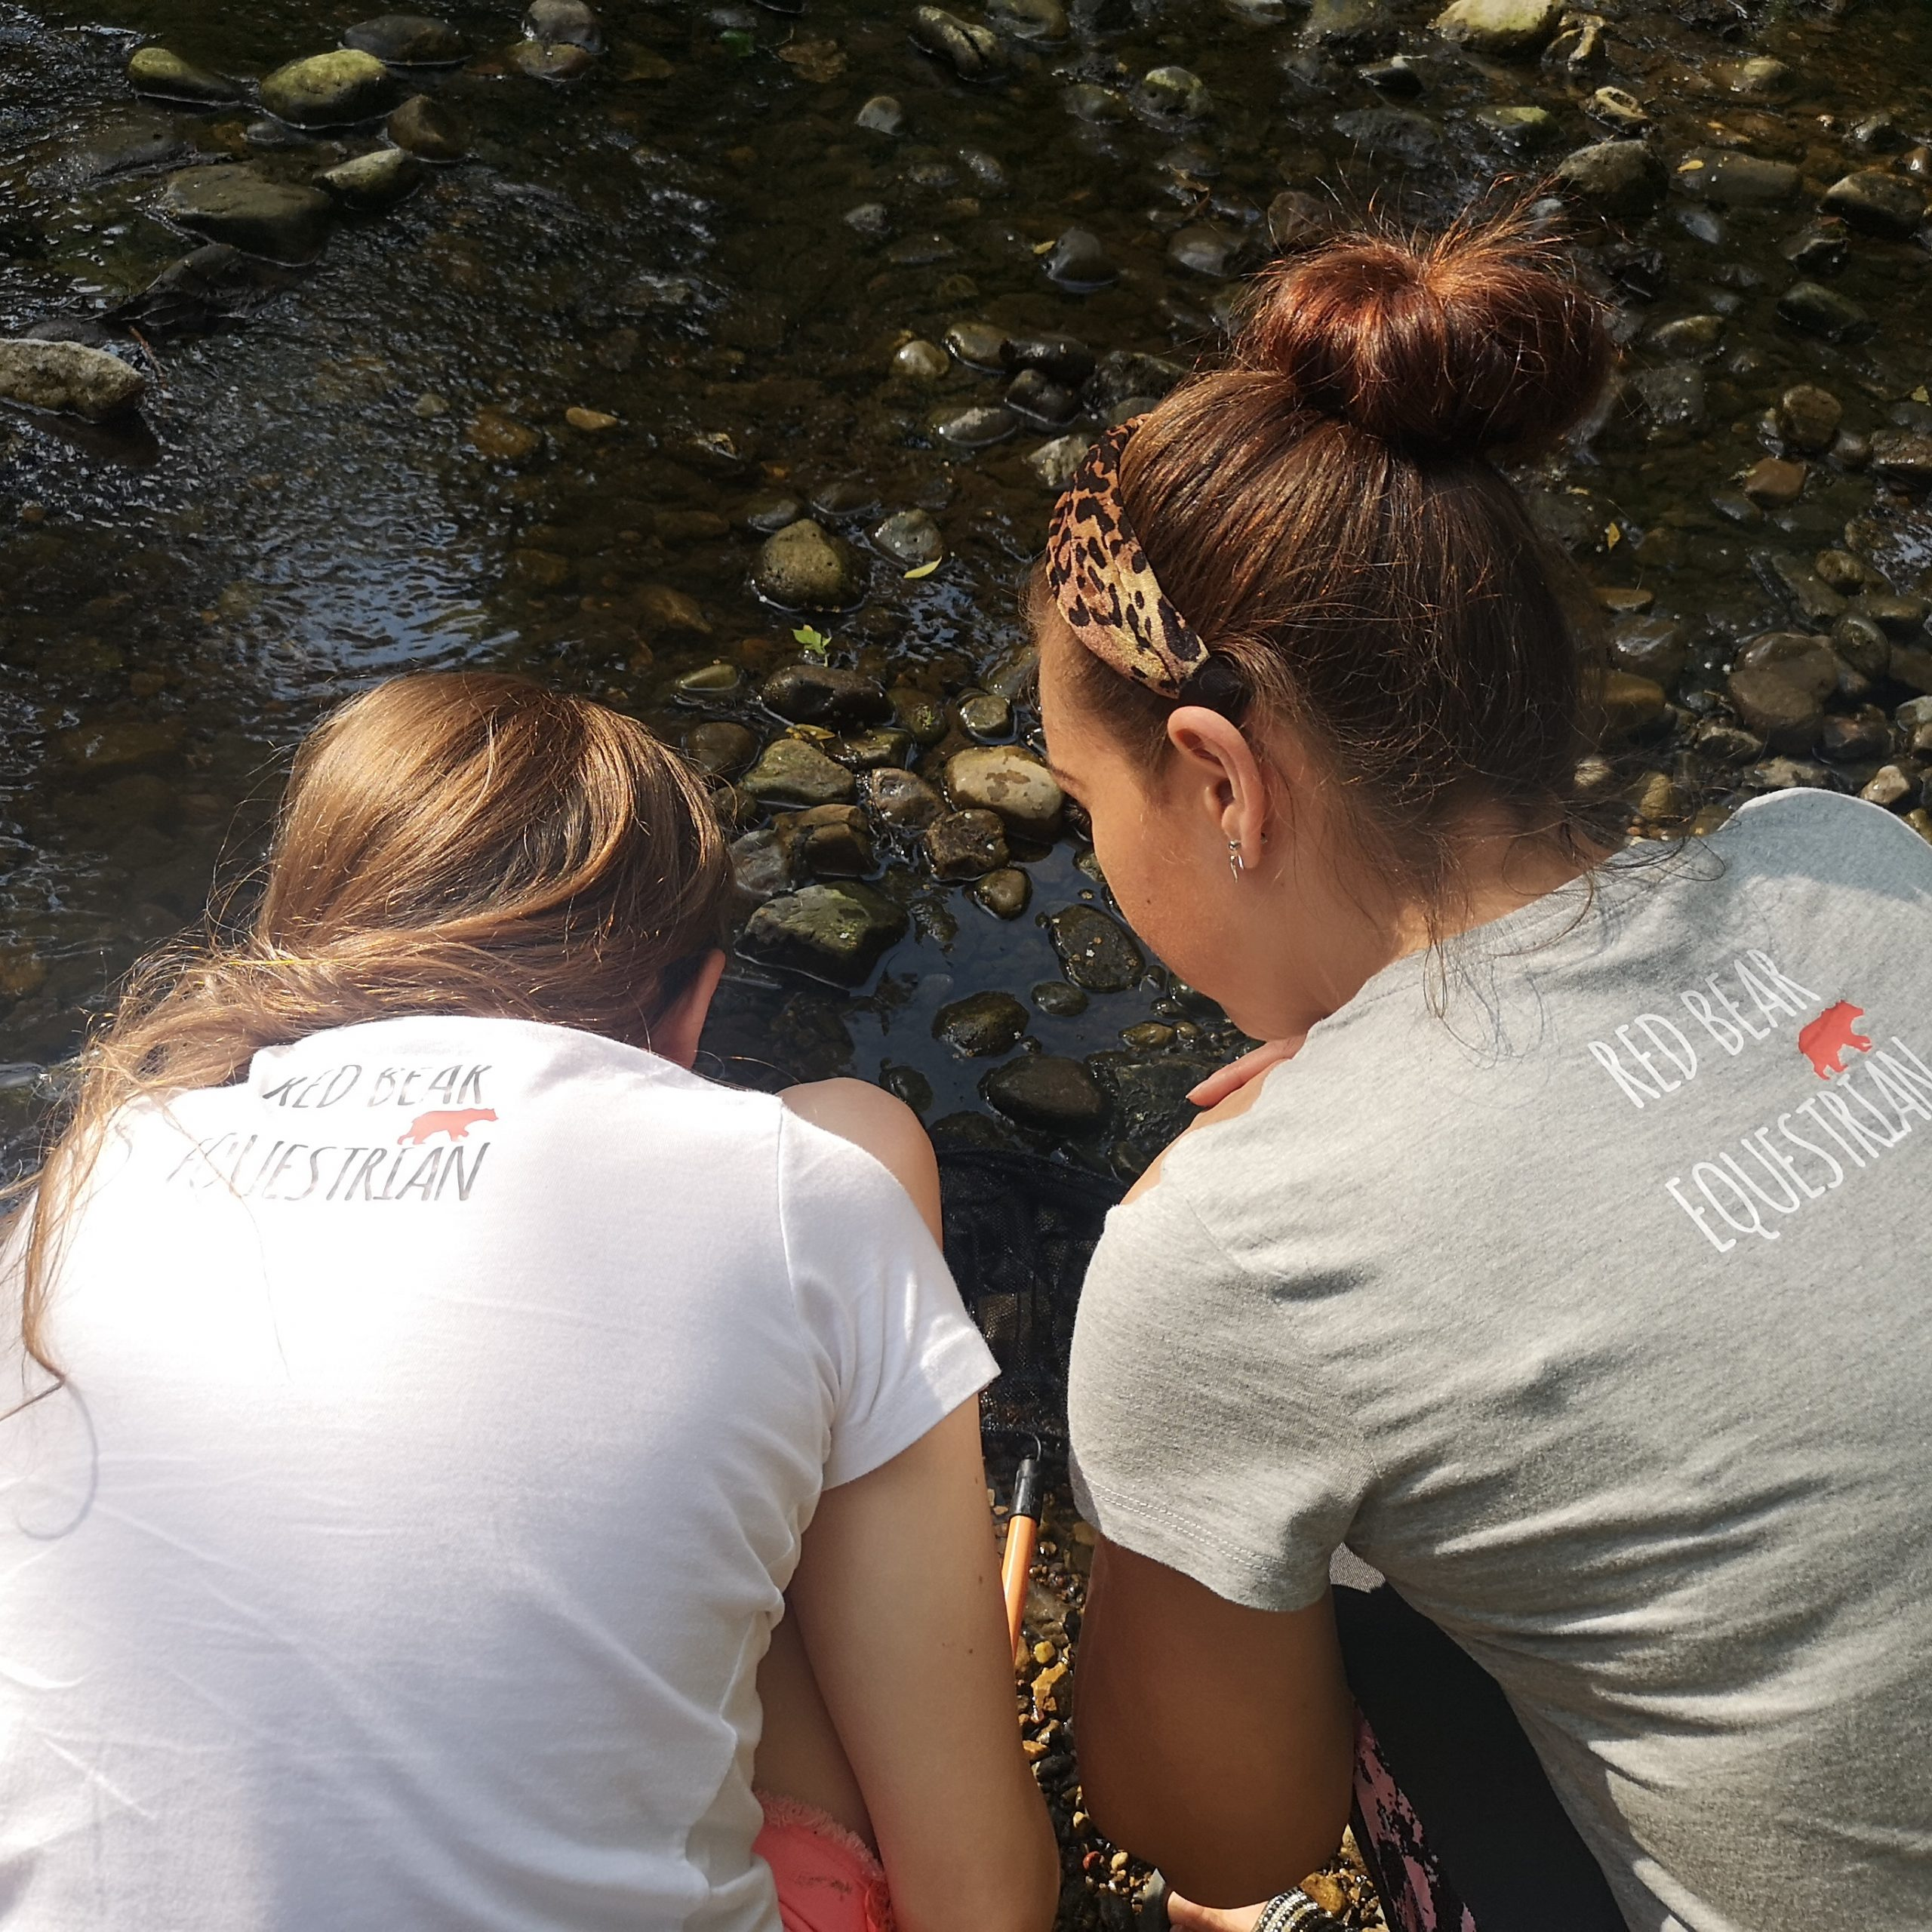 lady and child in red bear equestrian t shirts by the river